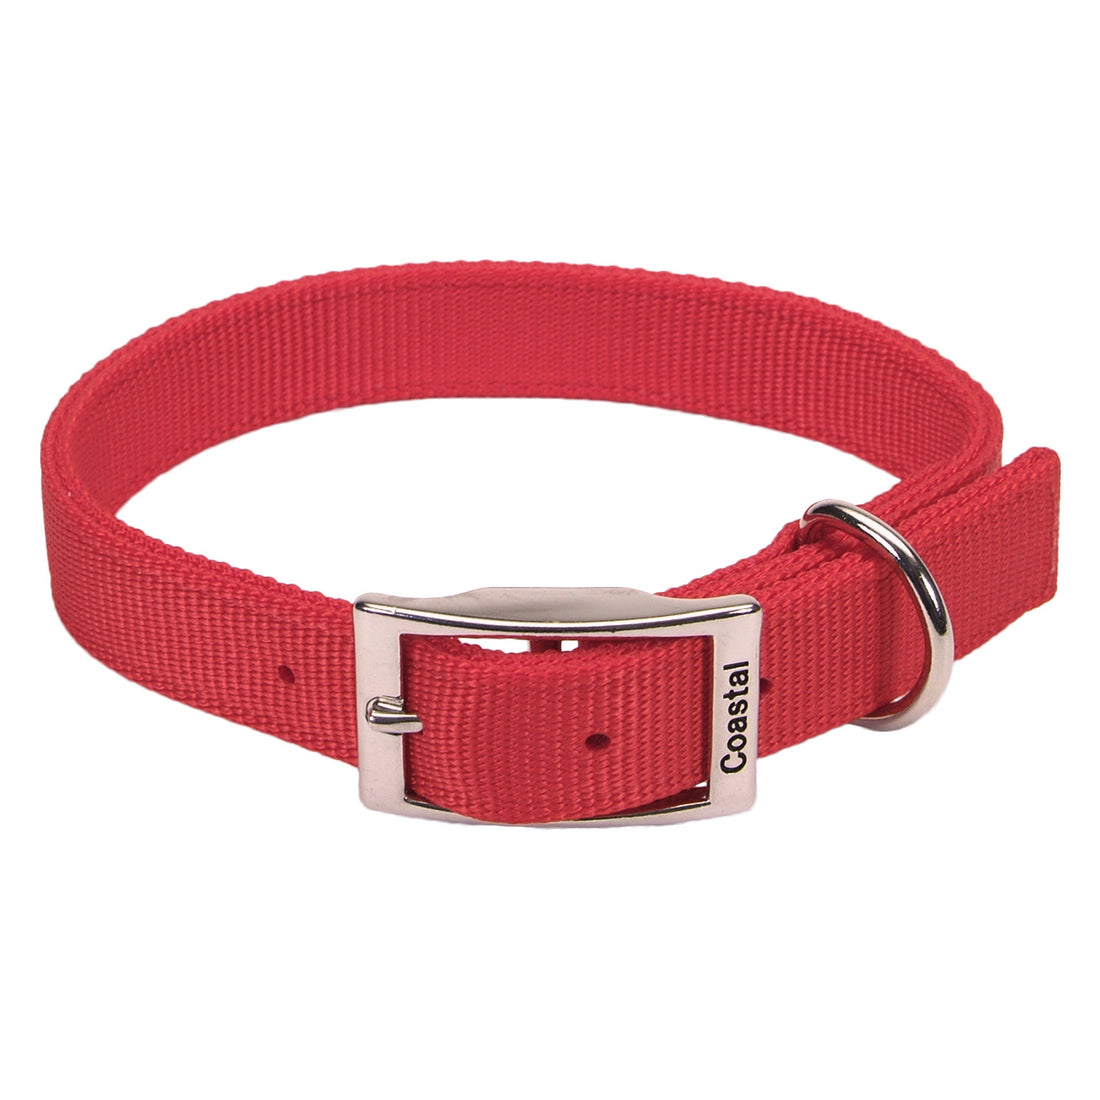 "Coastal Double Nylon Collar 26"" Red"